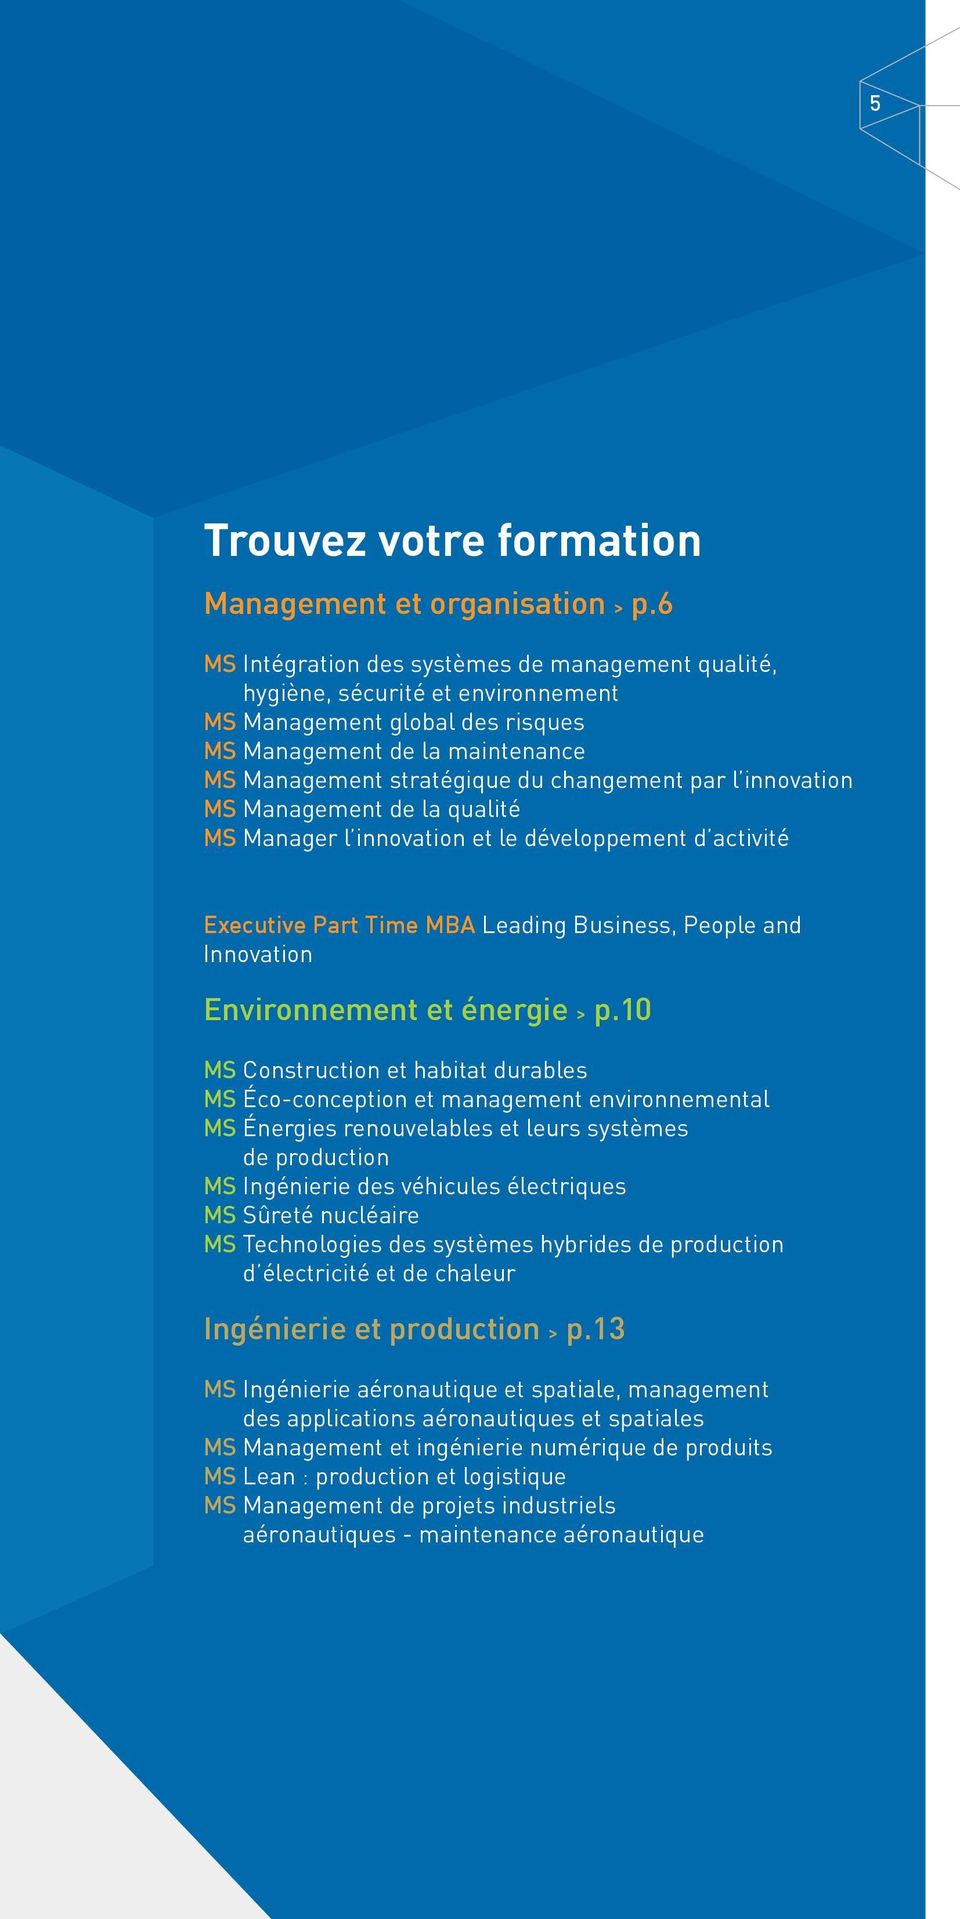 innovation MS Management de la qualité MS Manager l innovation et le développement d activité Executive Part Time MBA Leading Business, People and Innovation Environnement et énergie > p.